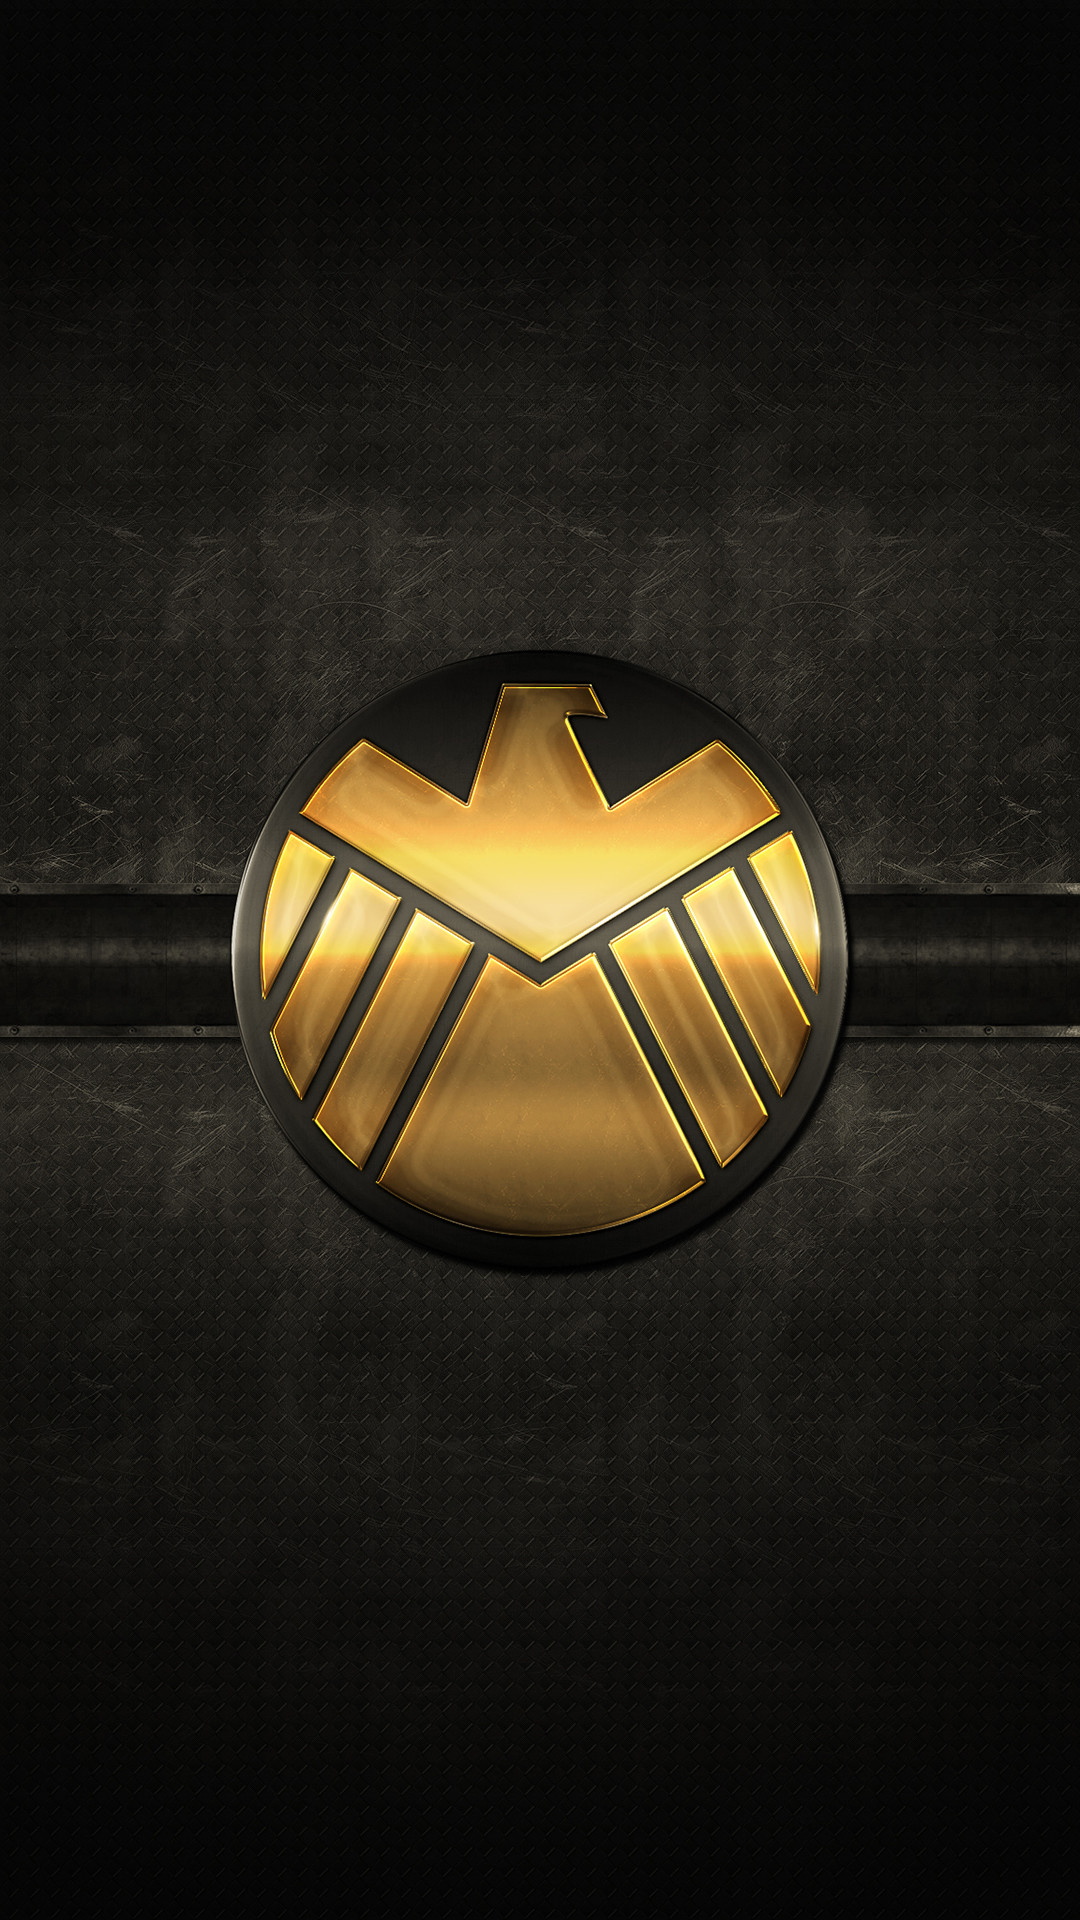 1080x1920 Showing Gallery For Marvel Shield Logo Iphone Wallpaper